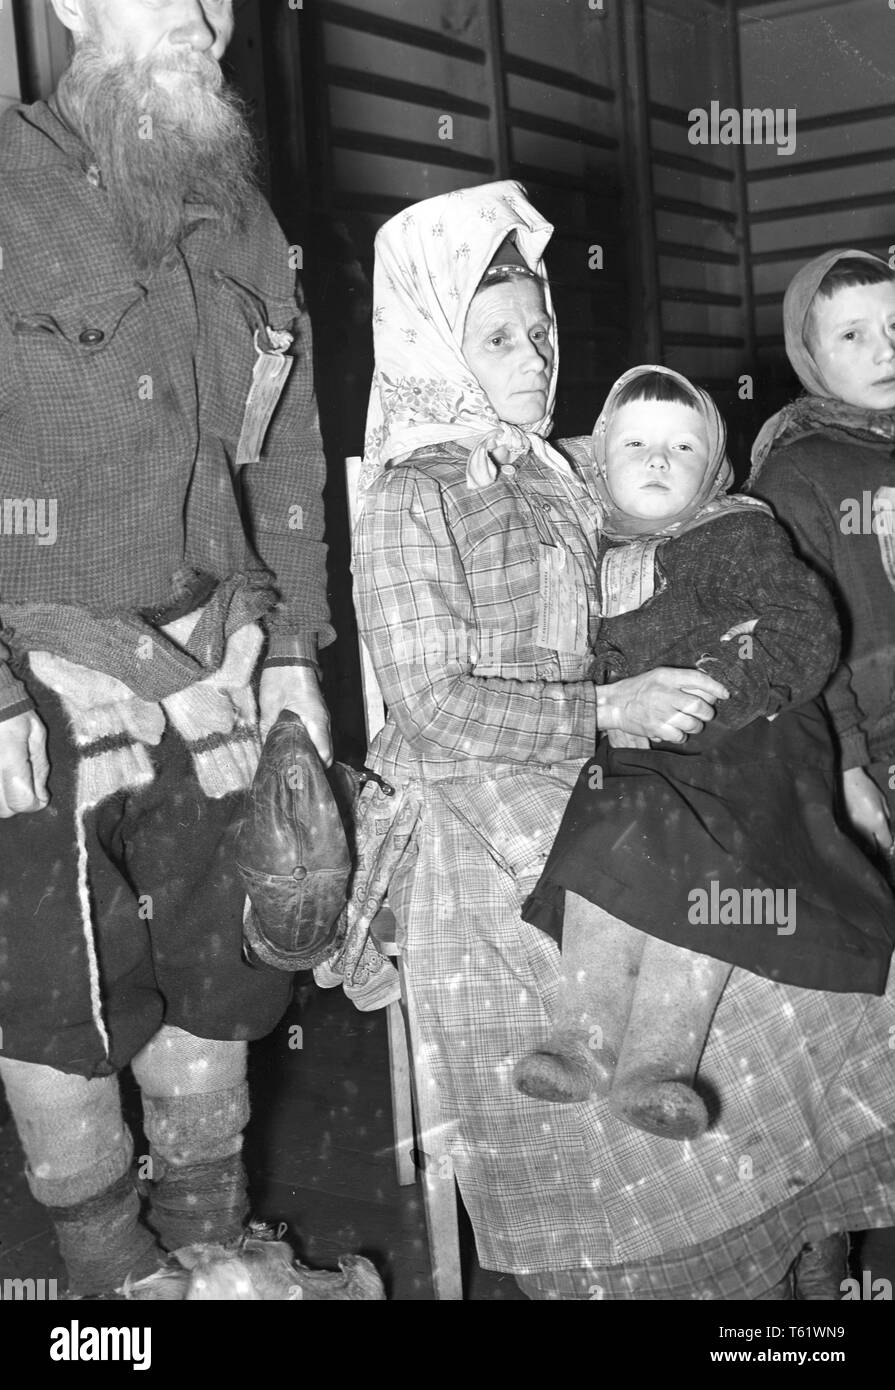 The Winter War. A military conflict between the Soviet union and Finland. It began with a Soviet invasion on november 1939 when Soviet infantery crossed the border on the Karelian Isthmus. Here local people with name tags around their necks ready to be evacuated on the Karelian Isthmus. December 1939. Photo Kristoffersson ref 98-14 - Stock Image